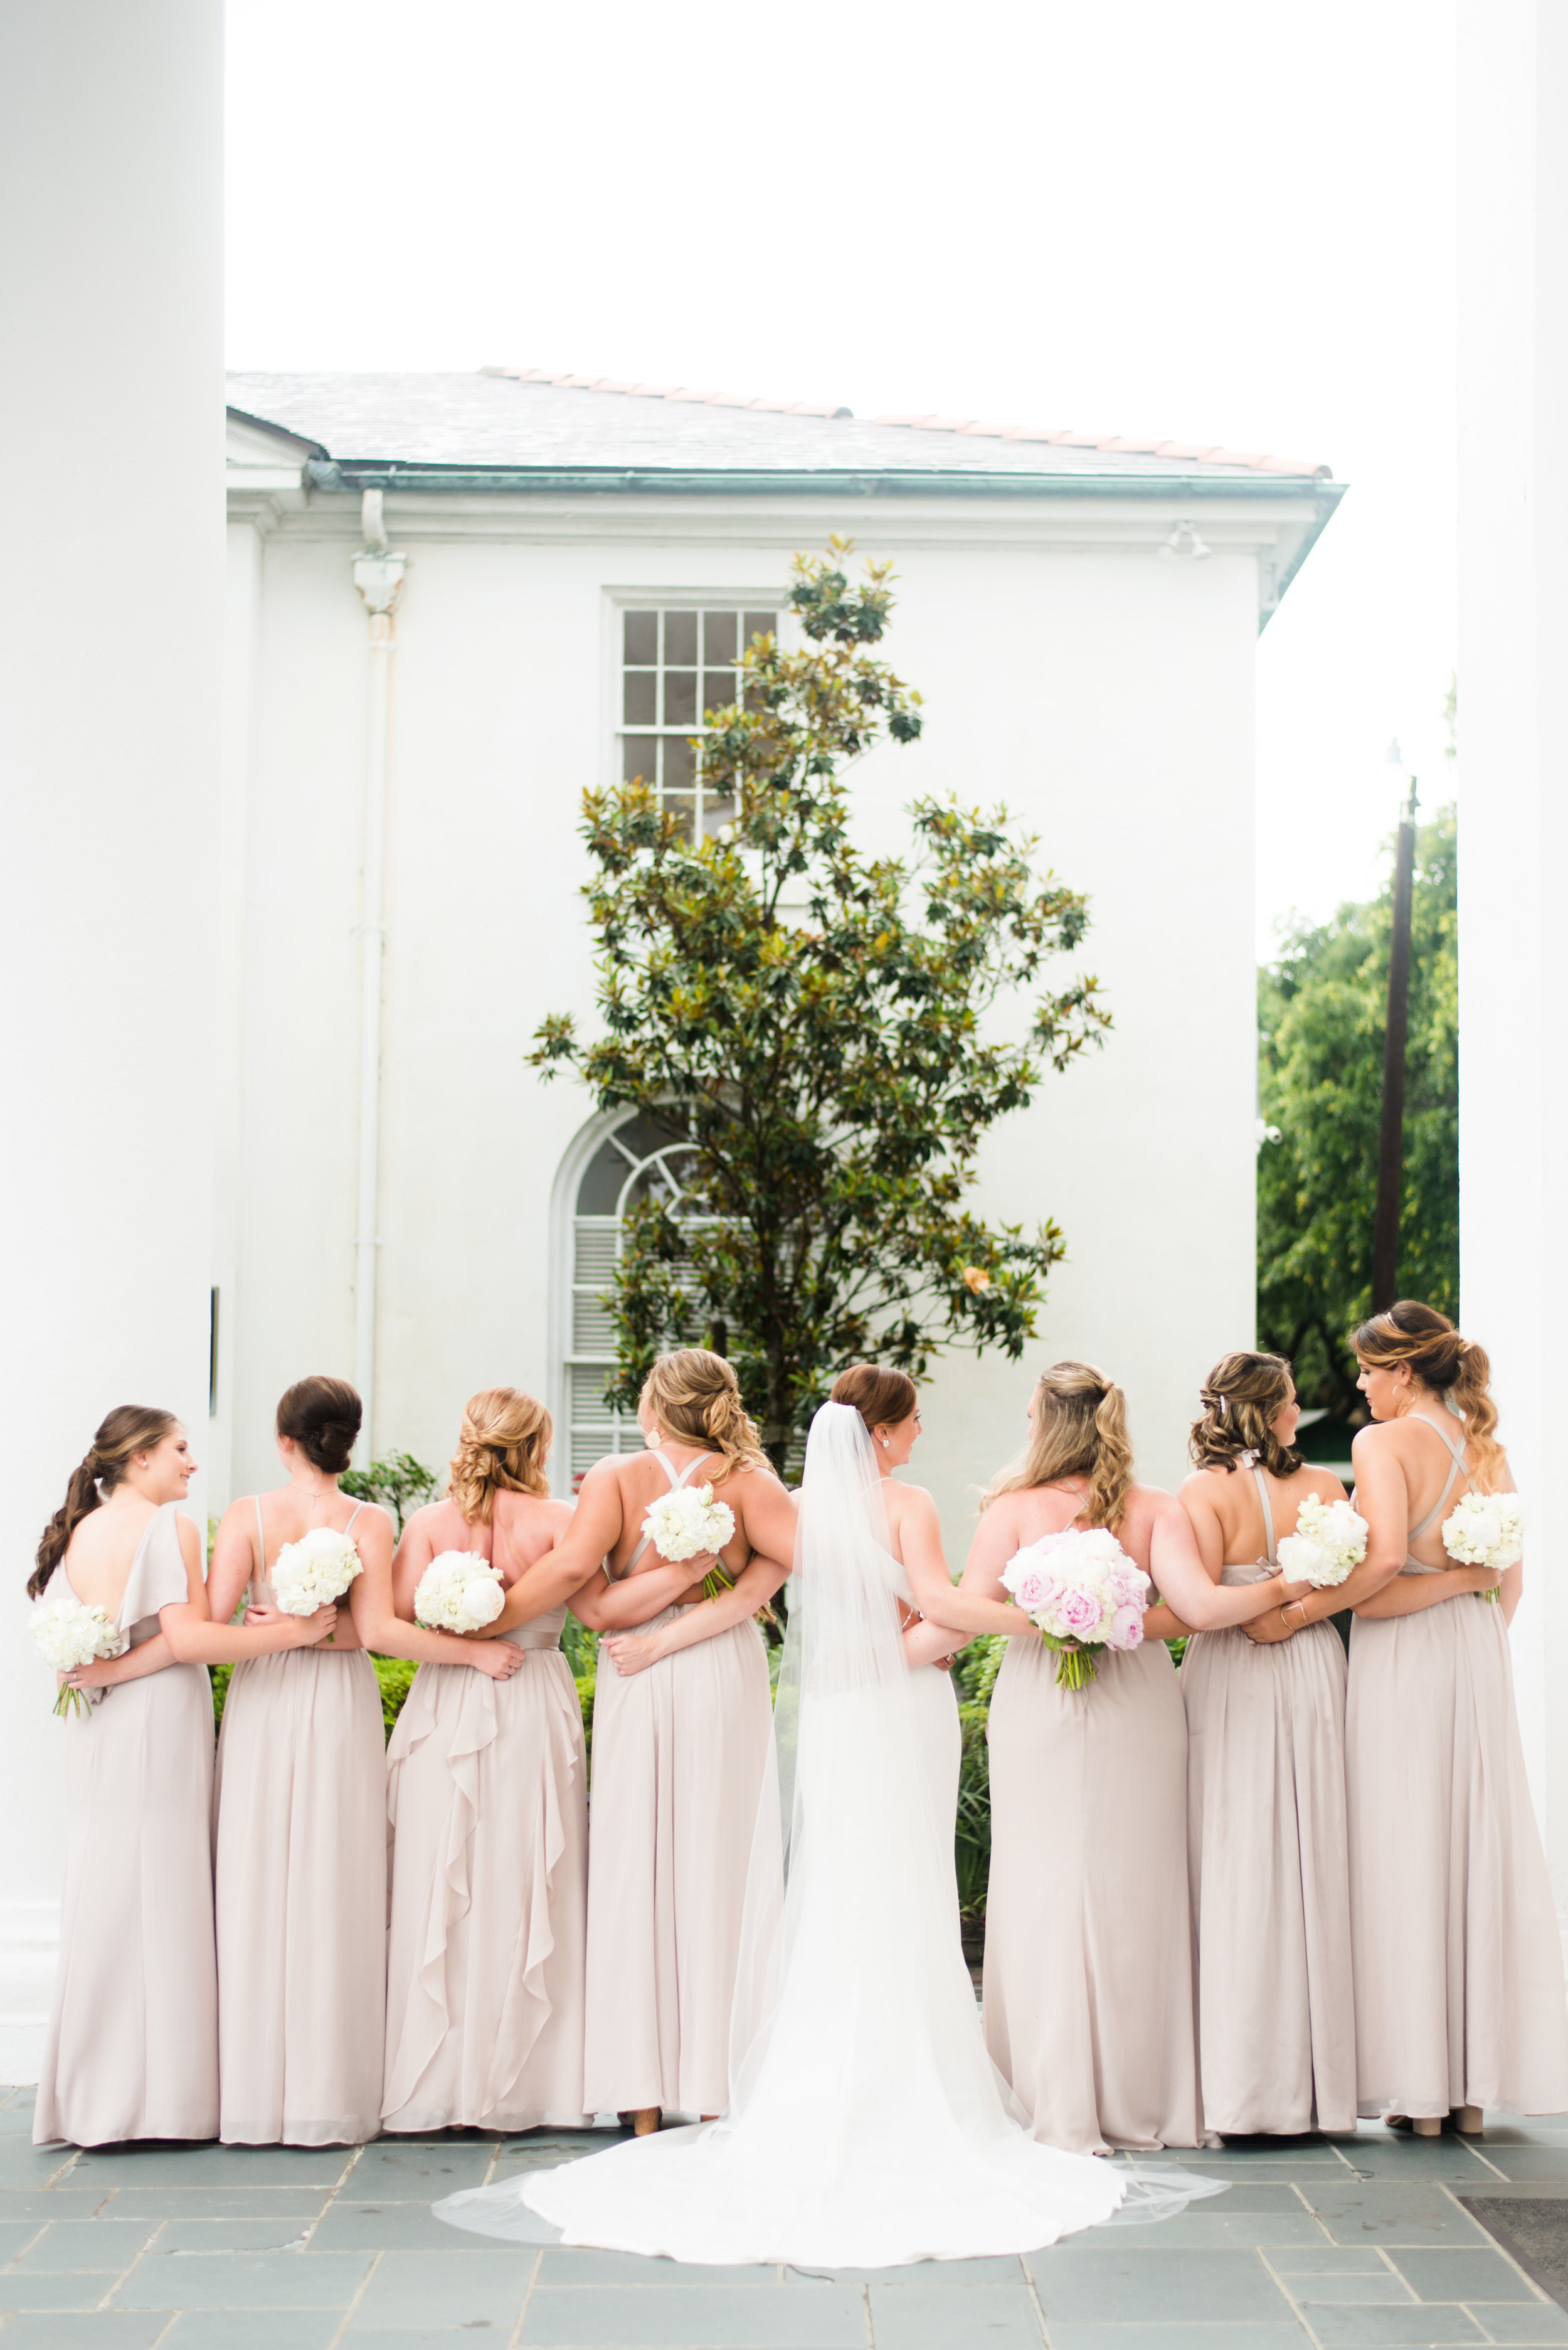 AN ELEGANT SPRING WEDDING AT THE DEWBERRY